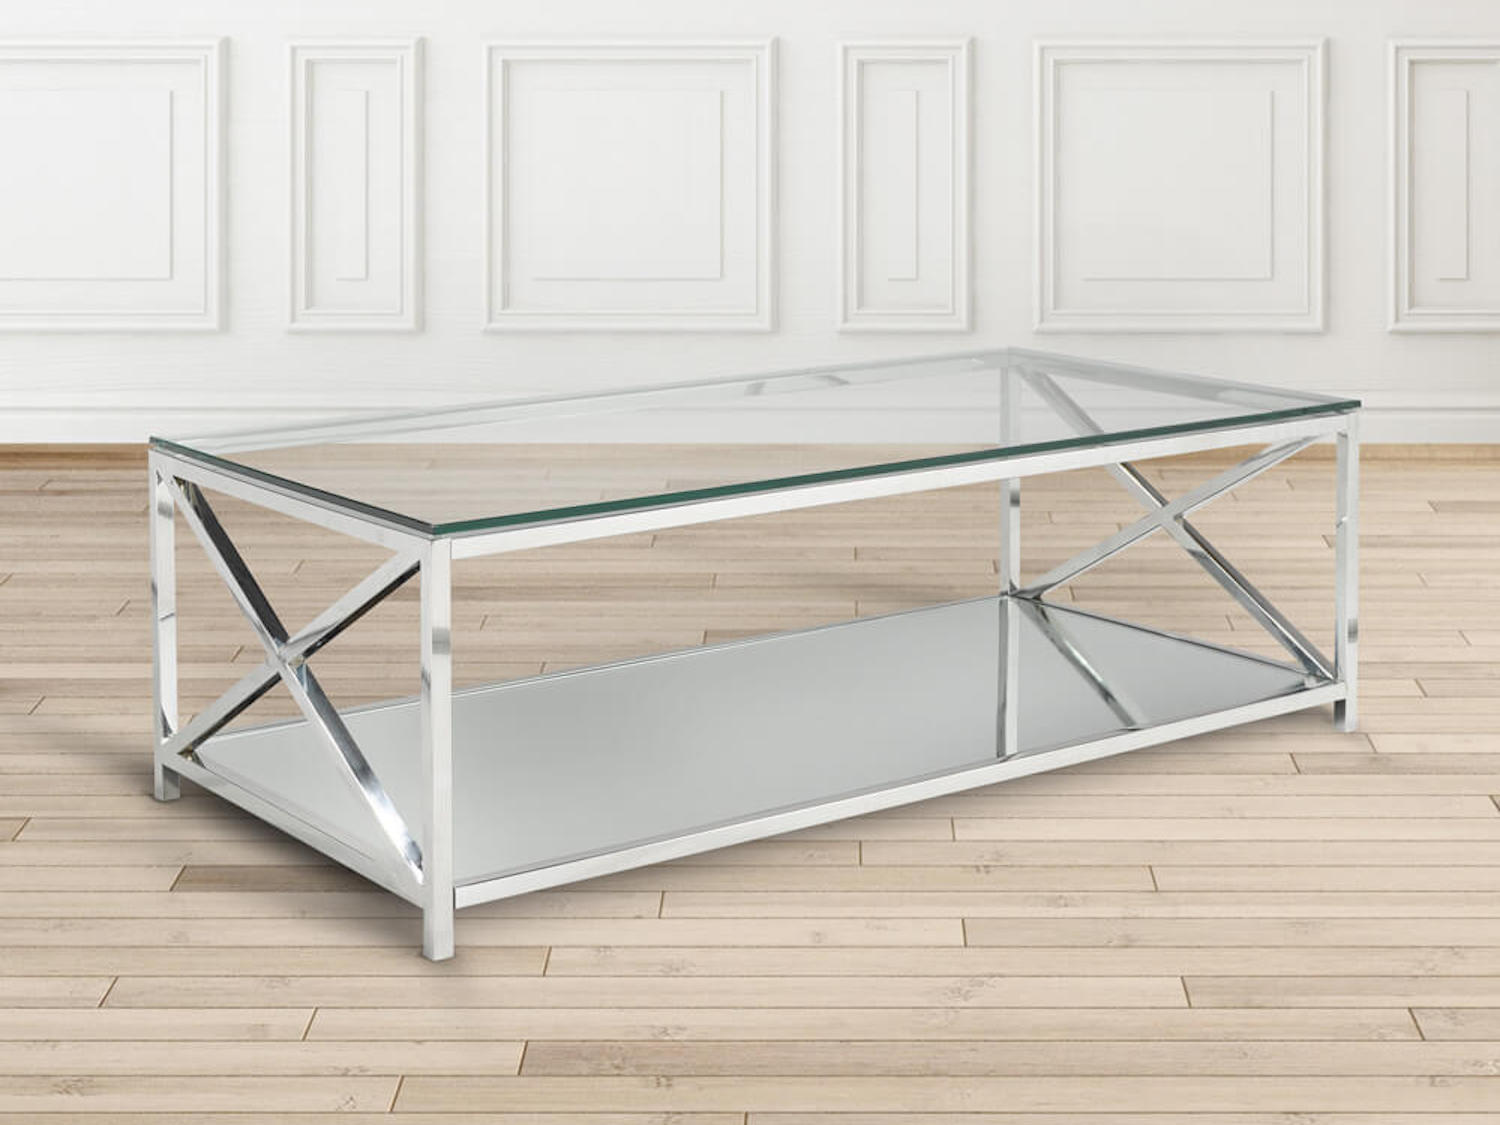 Elsa Coffee Table, 100102, Coffee Tables by Midha Furniture to Brampton, Mississauga, Etobicoke, Toronto, Scraborough, Caledon, Oakville, Markham, Ajax, Pickering, Oshawa, Richmondhill, Kitchener, Hamilton and GTA area